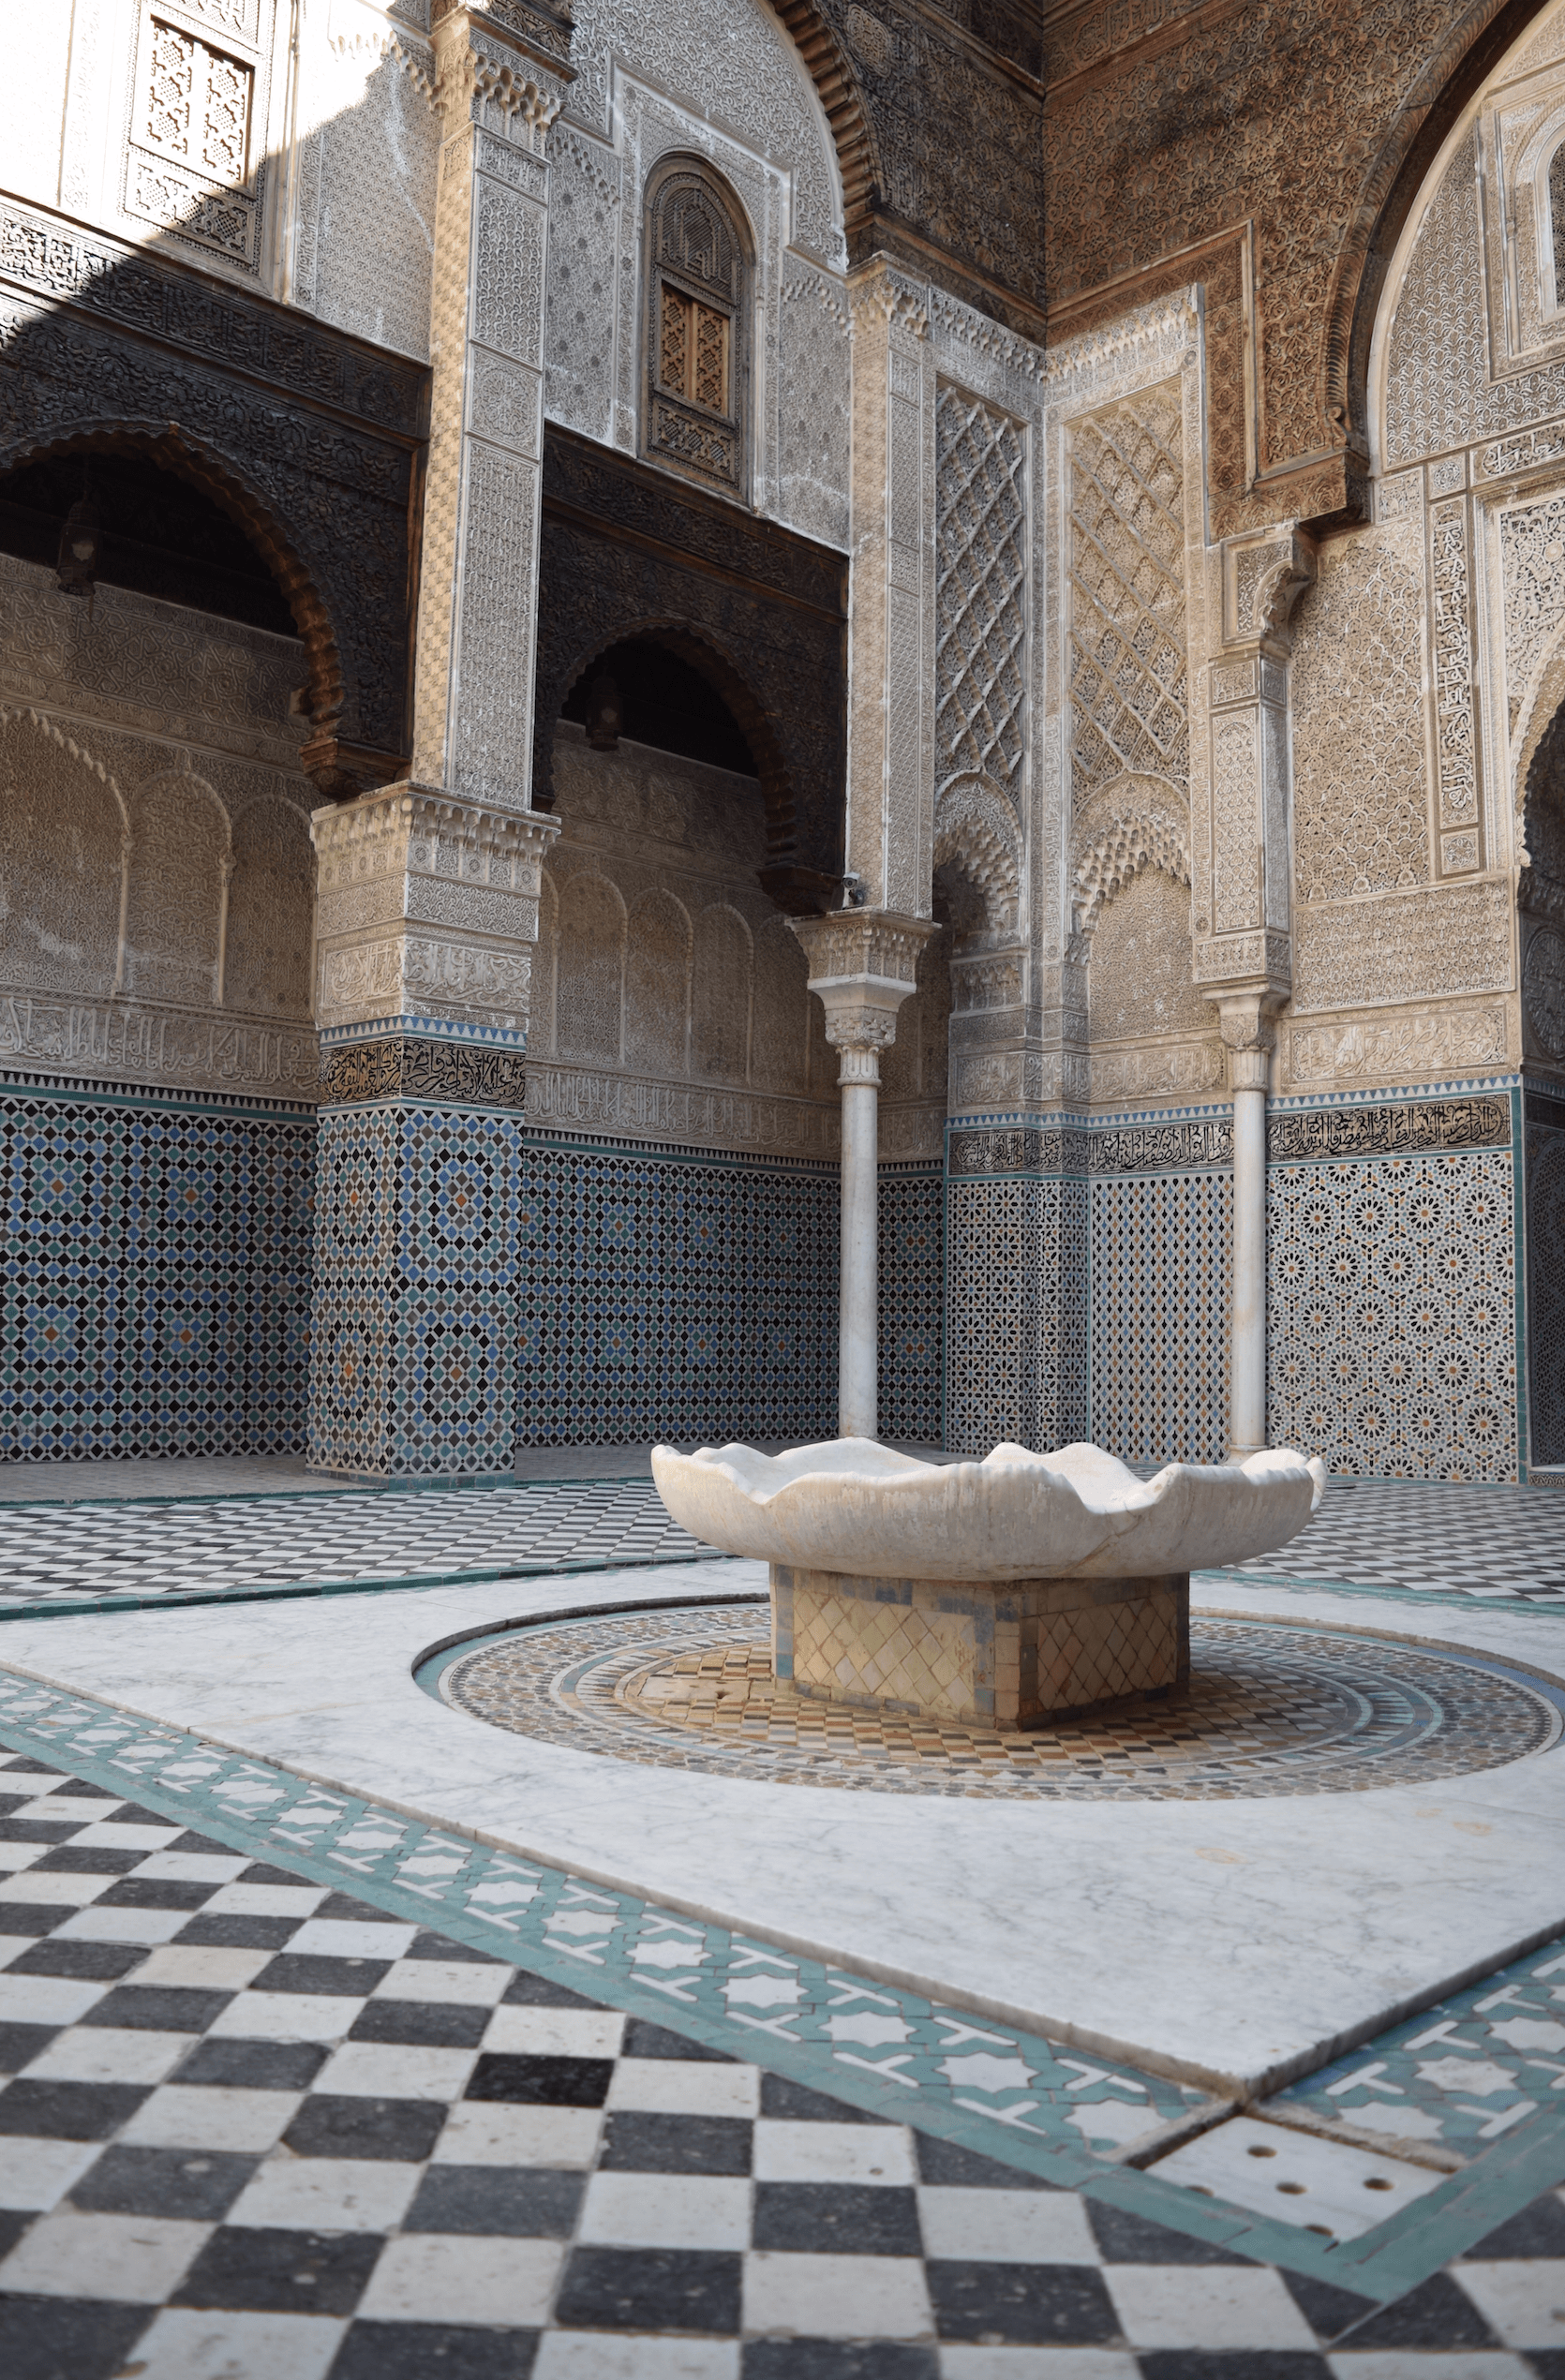 8 THINGS YOU CAN'T MISS IN FES, MOROCCO | Fez Morocco - Fes Morocco - Fes Tanneries - Morocco Travel Blog - Hotels In Fes Morocco - Morocco Travel Guide - Guide To Fes Morocco - What To Do In Morocco - Morocco Travel Itinerary - Planning A Trip To Morocco - #morocco #travel #fes